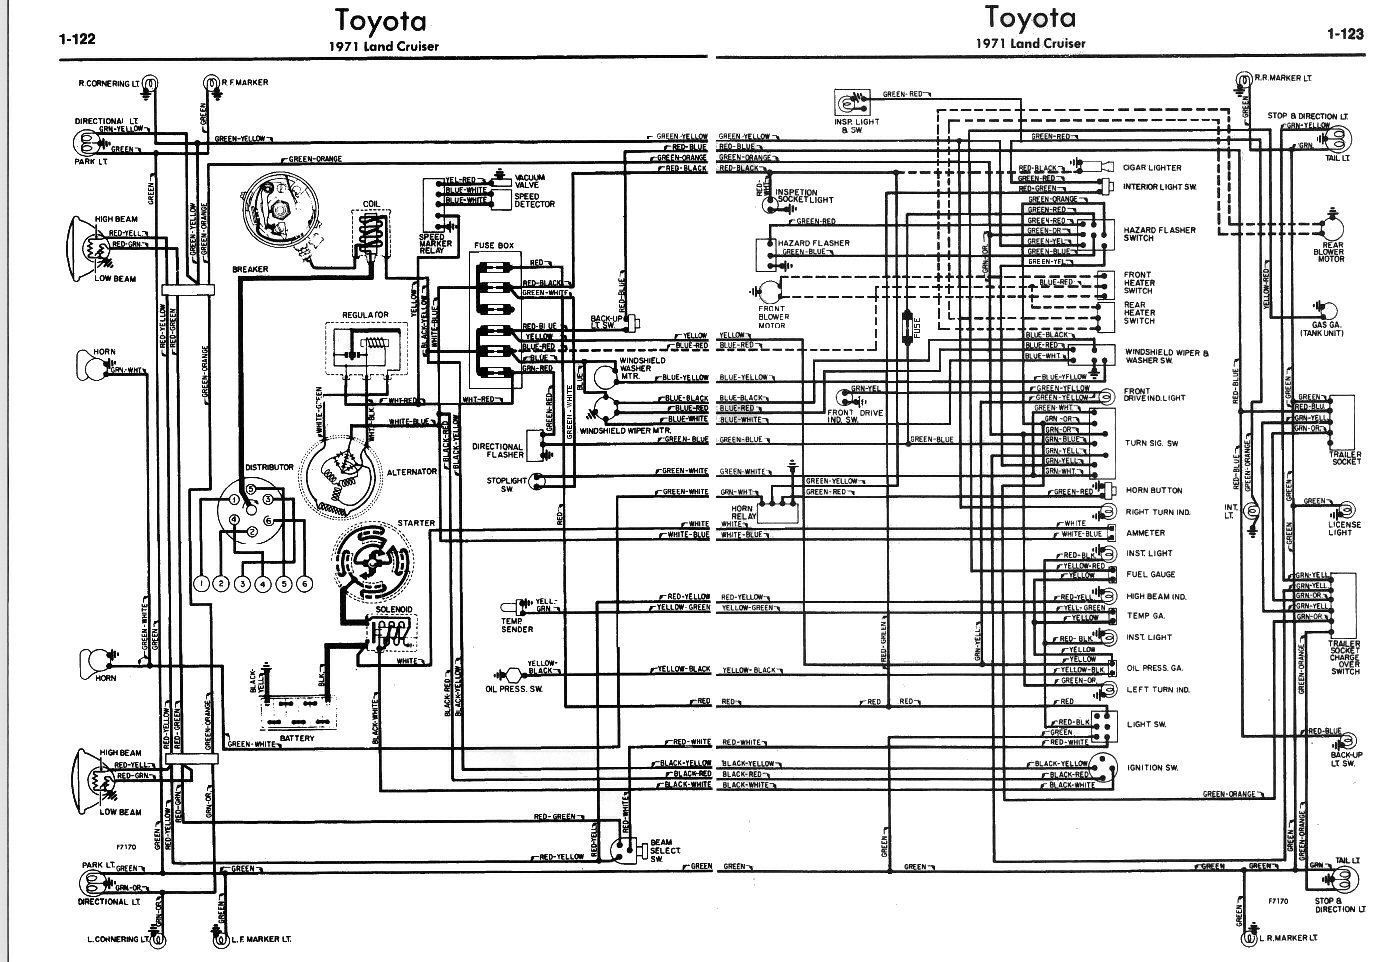 Coolermans electrical schematic and fsm file retrieval 1971g swarovskicordoba Images